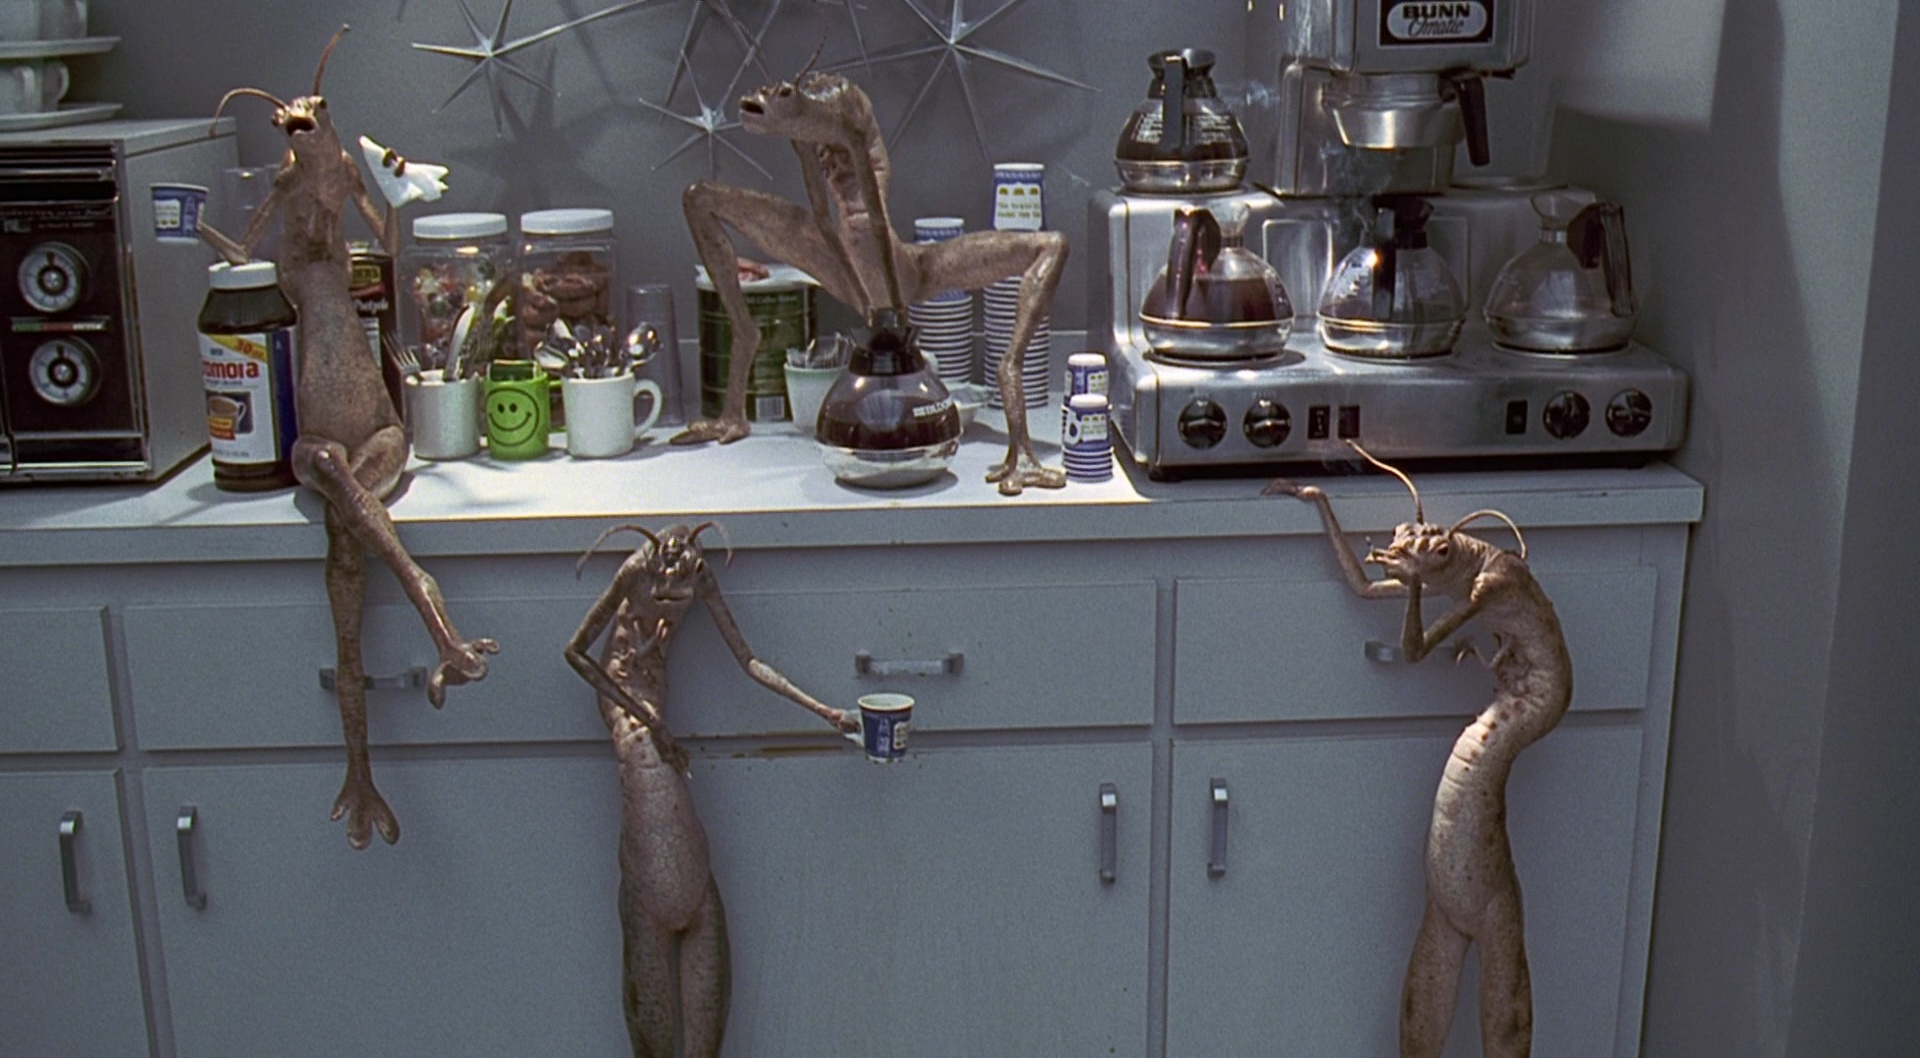 Bunn Coffee Maker Used By Aliens And Tommy Lee Jones In